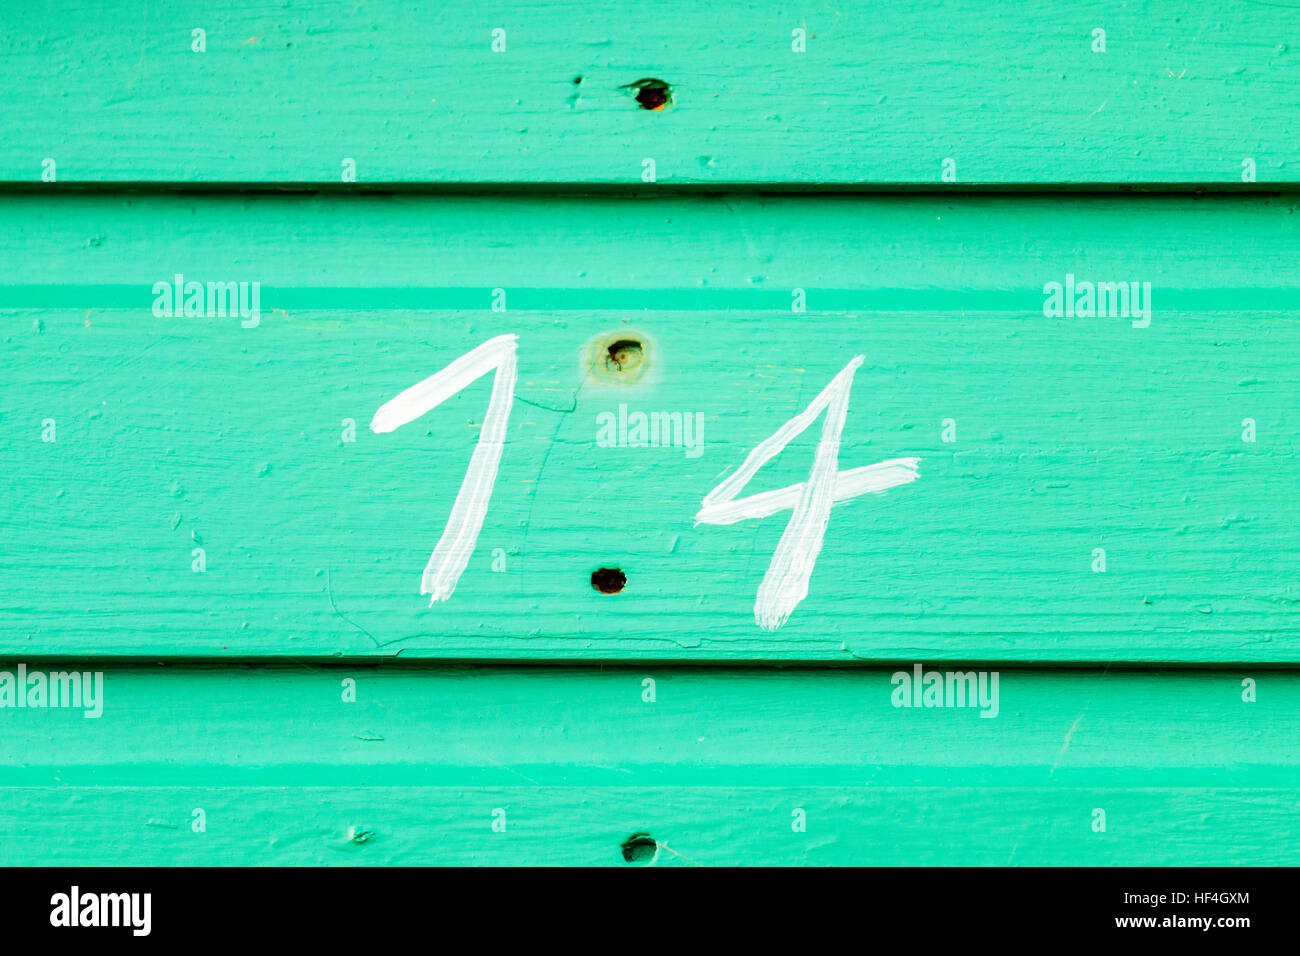 England, Whitstable. Number 14 painted white on green painted wooden boards. - Stock Image